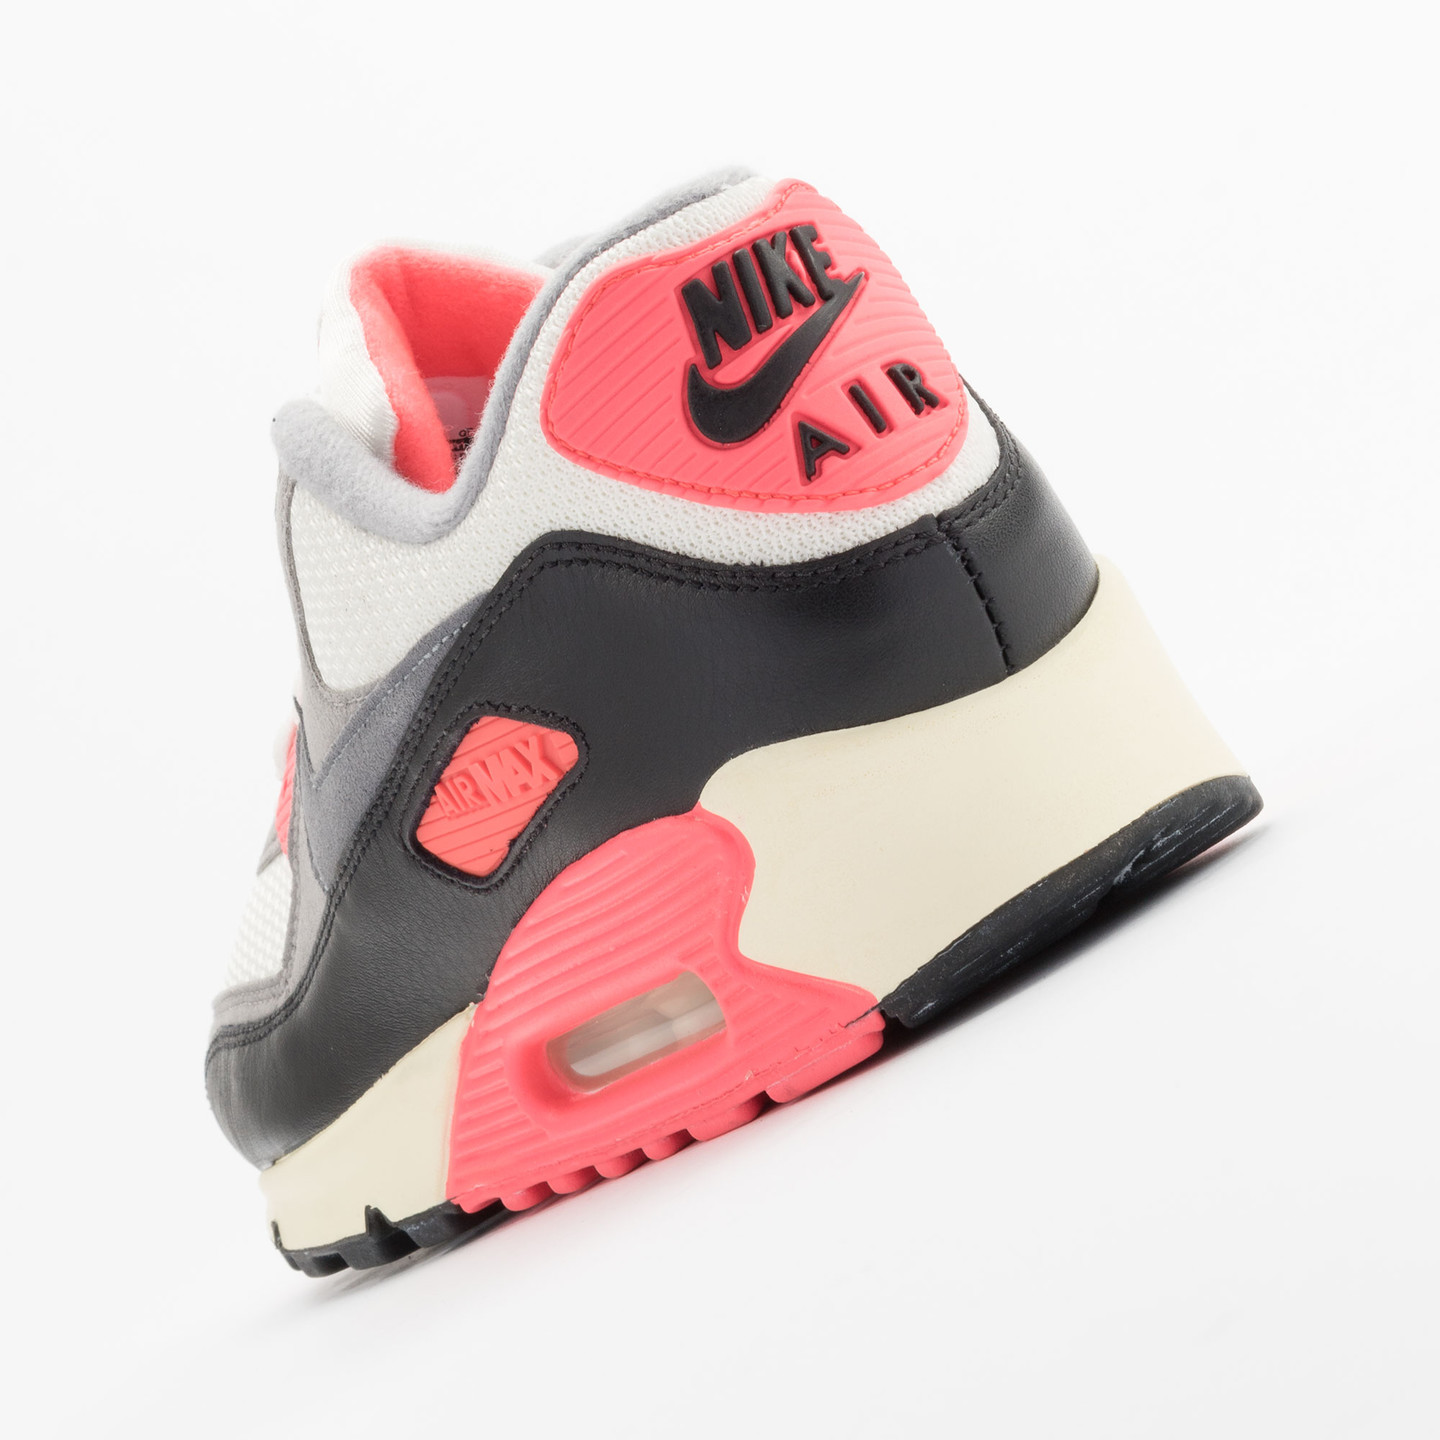 Nike Air Max 90 OG Vintage Infrared Sail/Cool Grey-Mdm Grey-Infrrd 543361-161-41